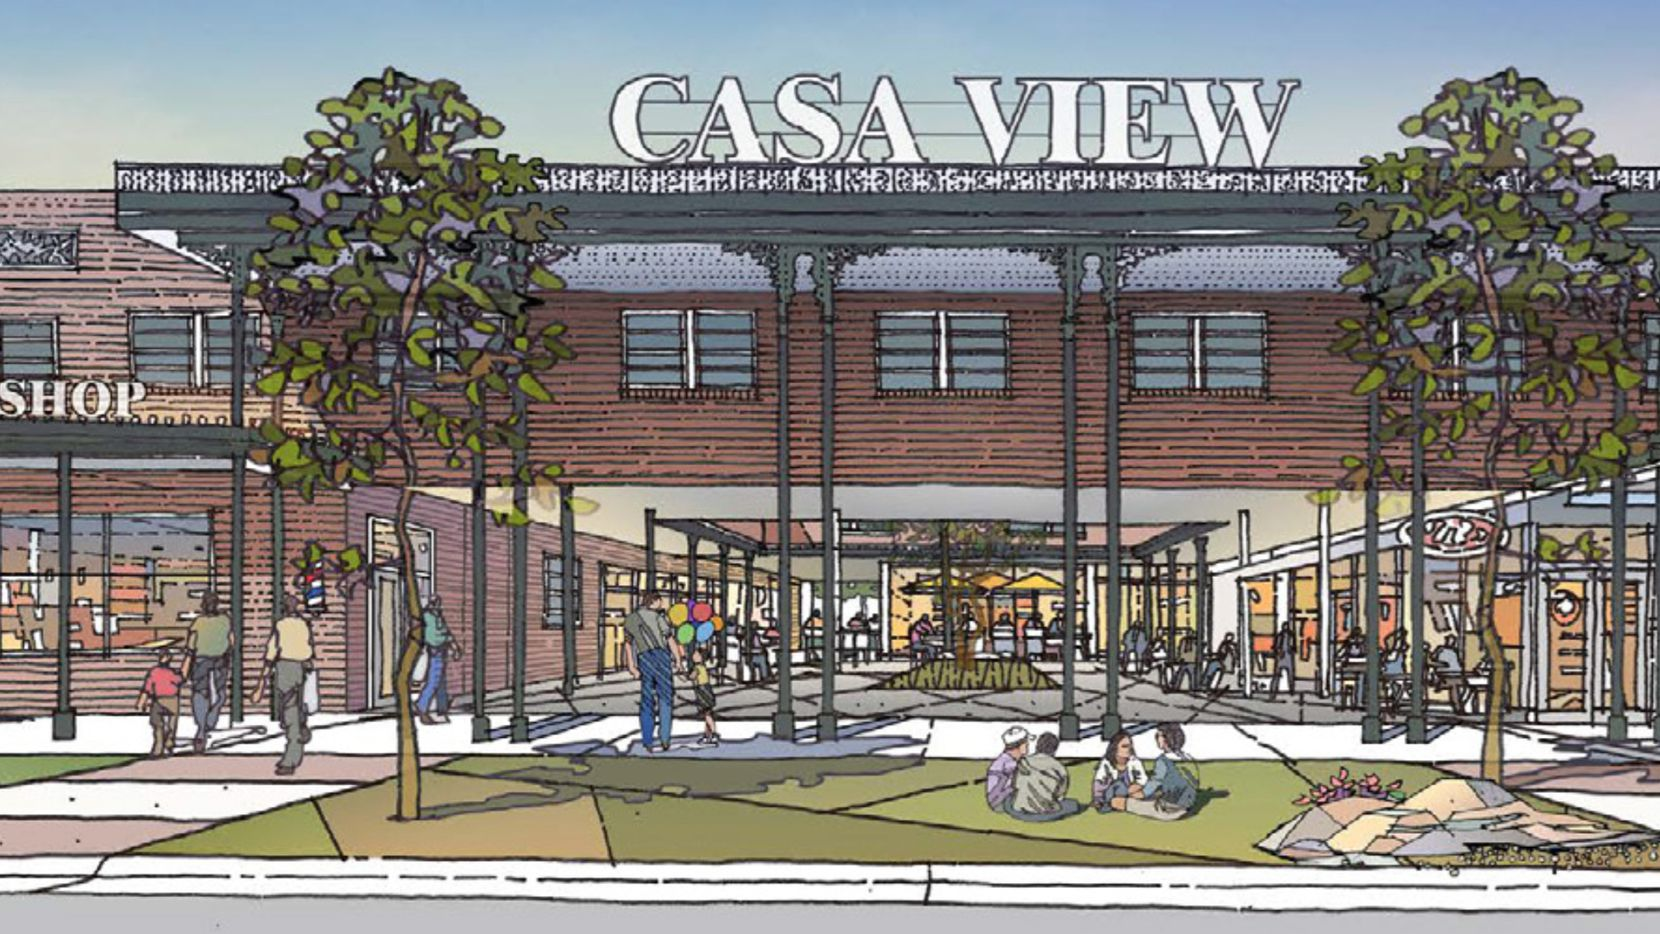 """Casa View Village was built in what was originally called a """"New Orleans style"""" of architecture."""